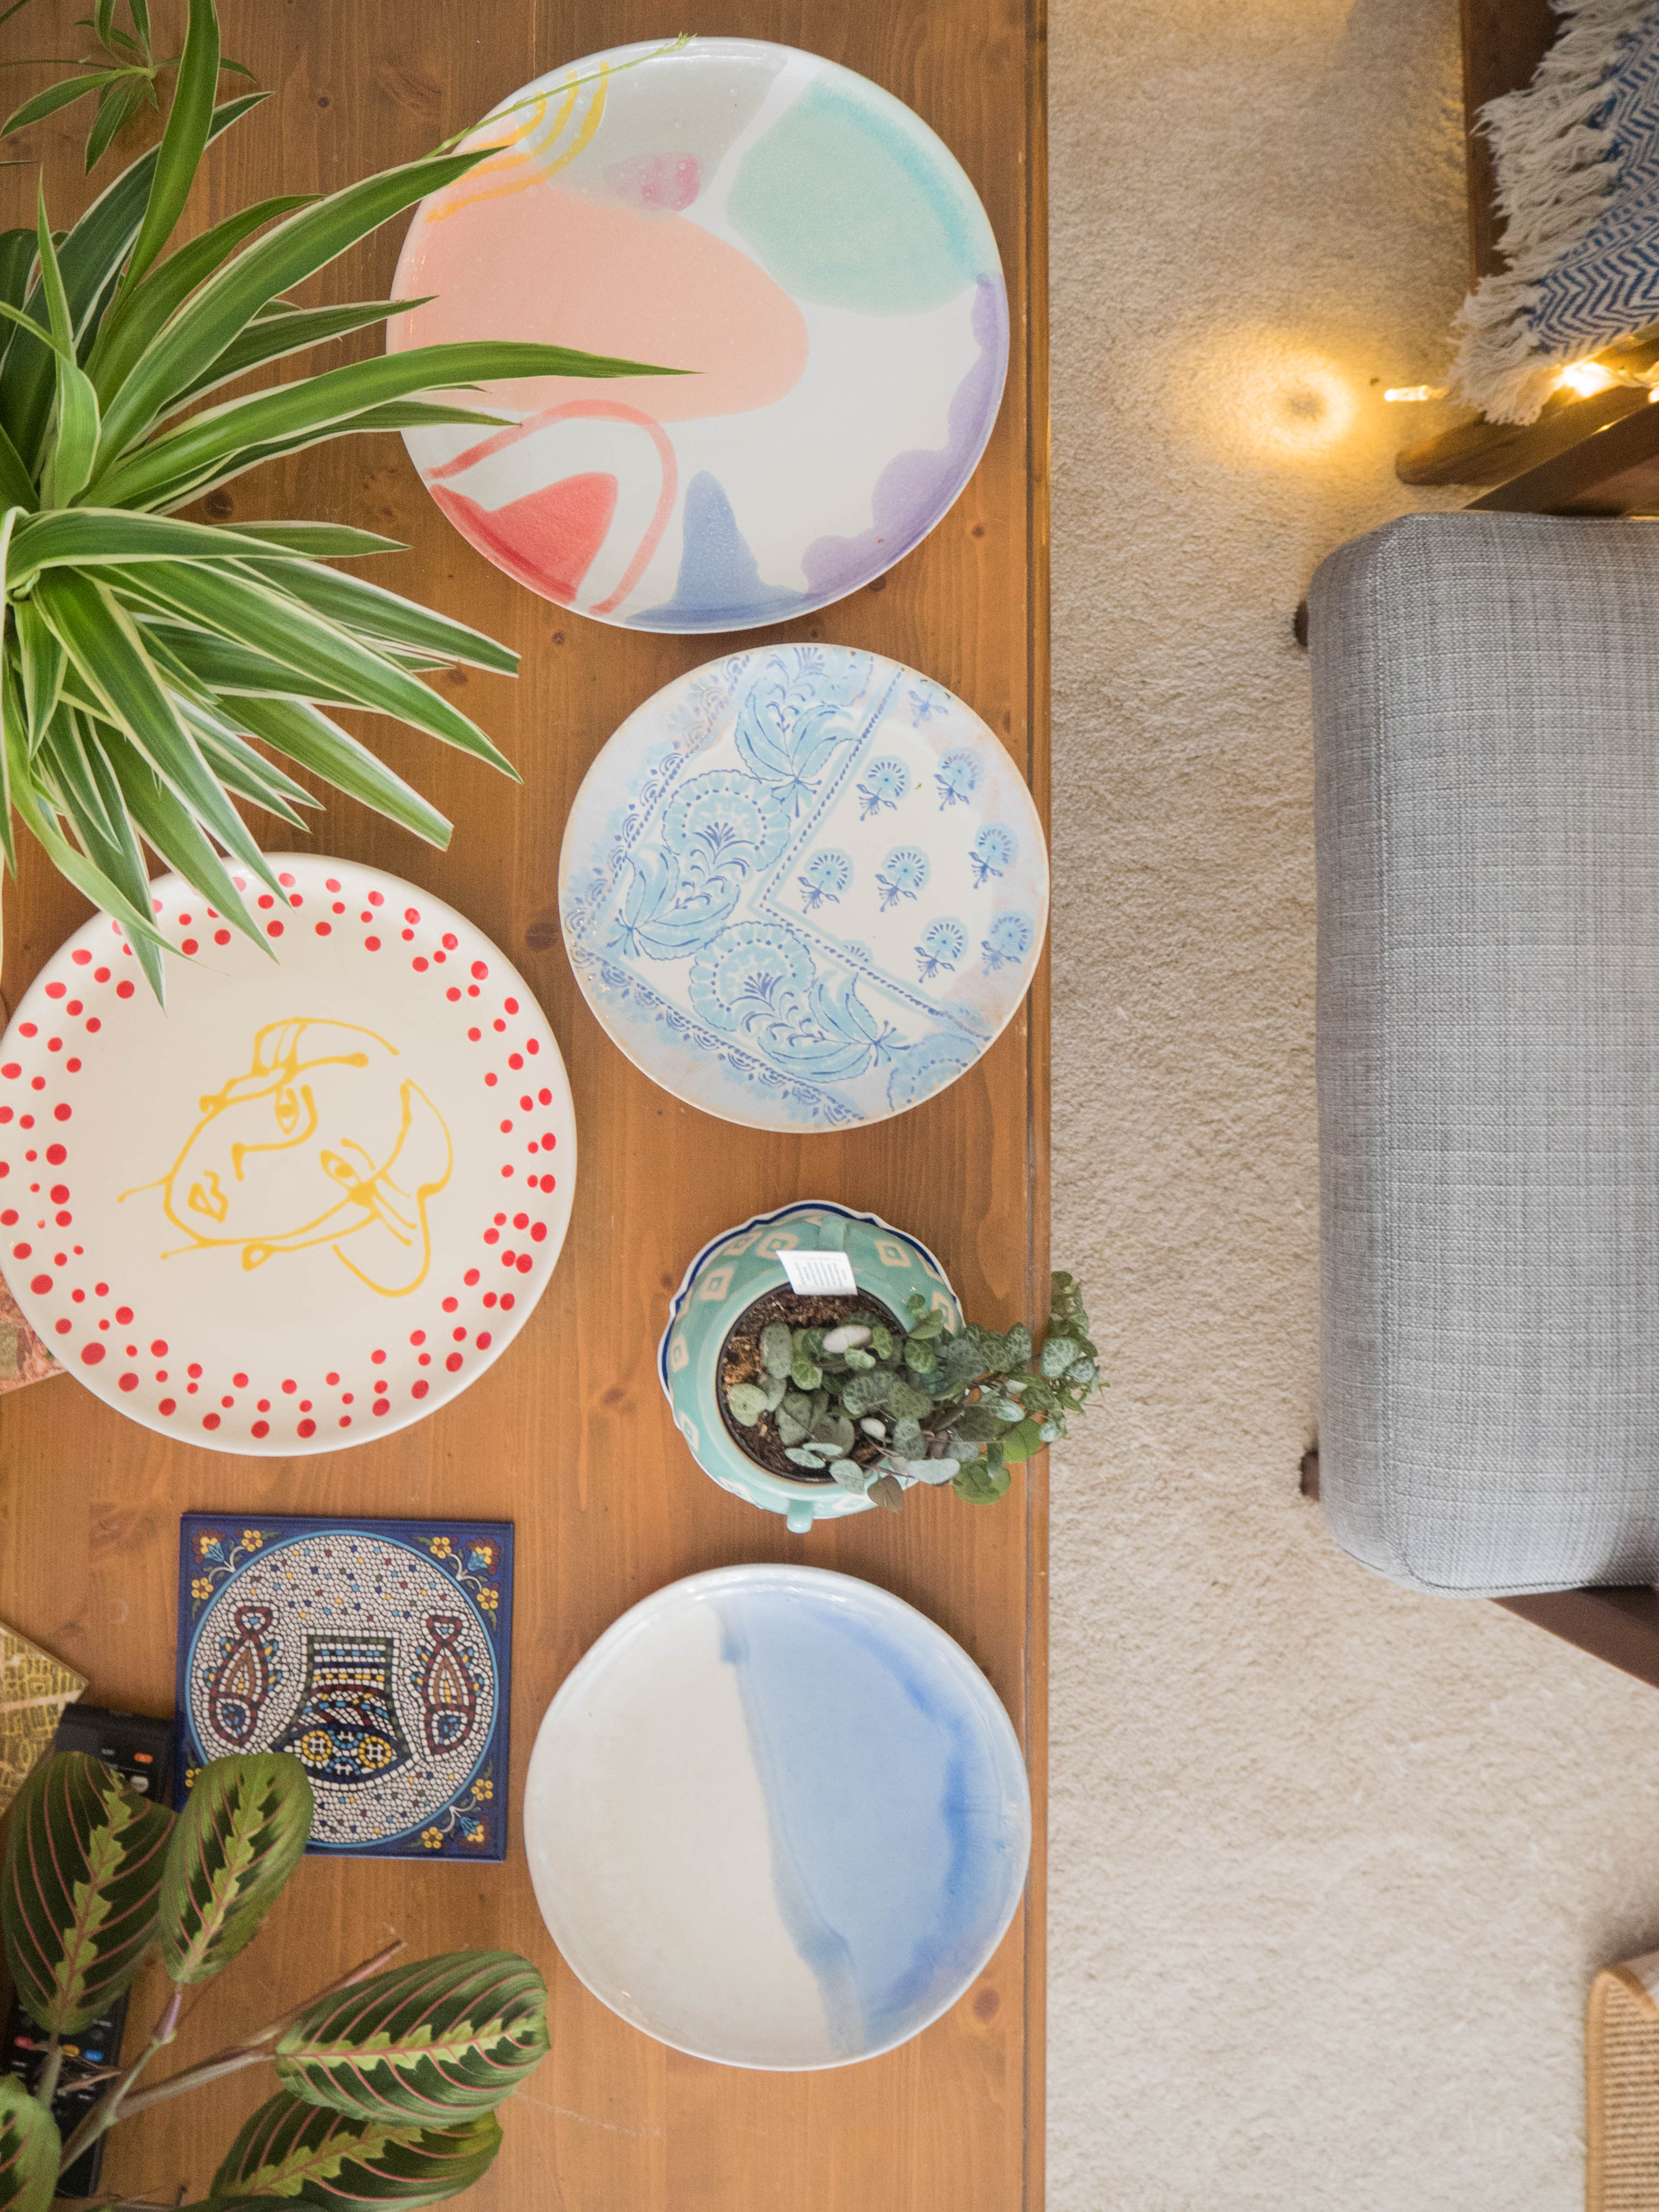 Ghenet Actually || 6 Recent Purchases for Our Flat